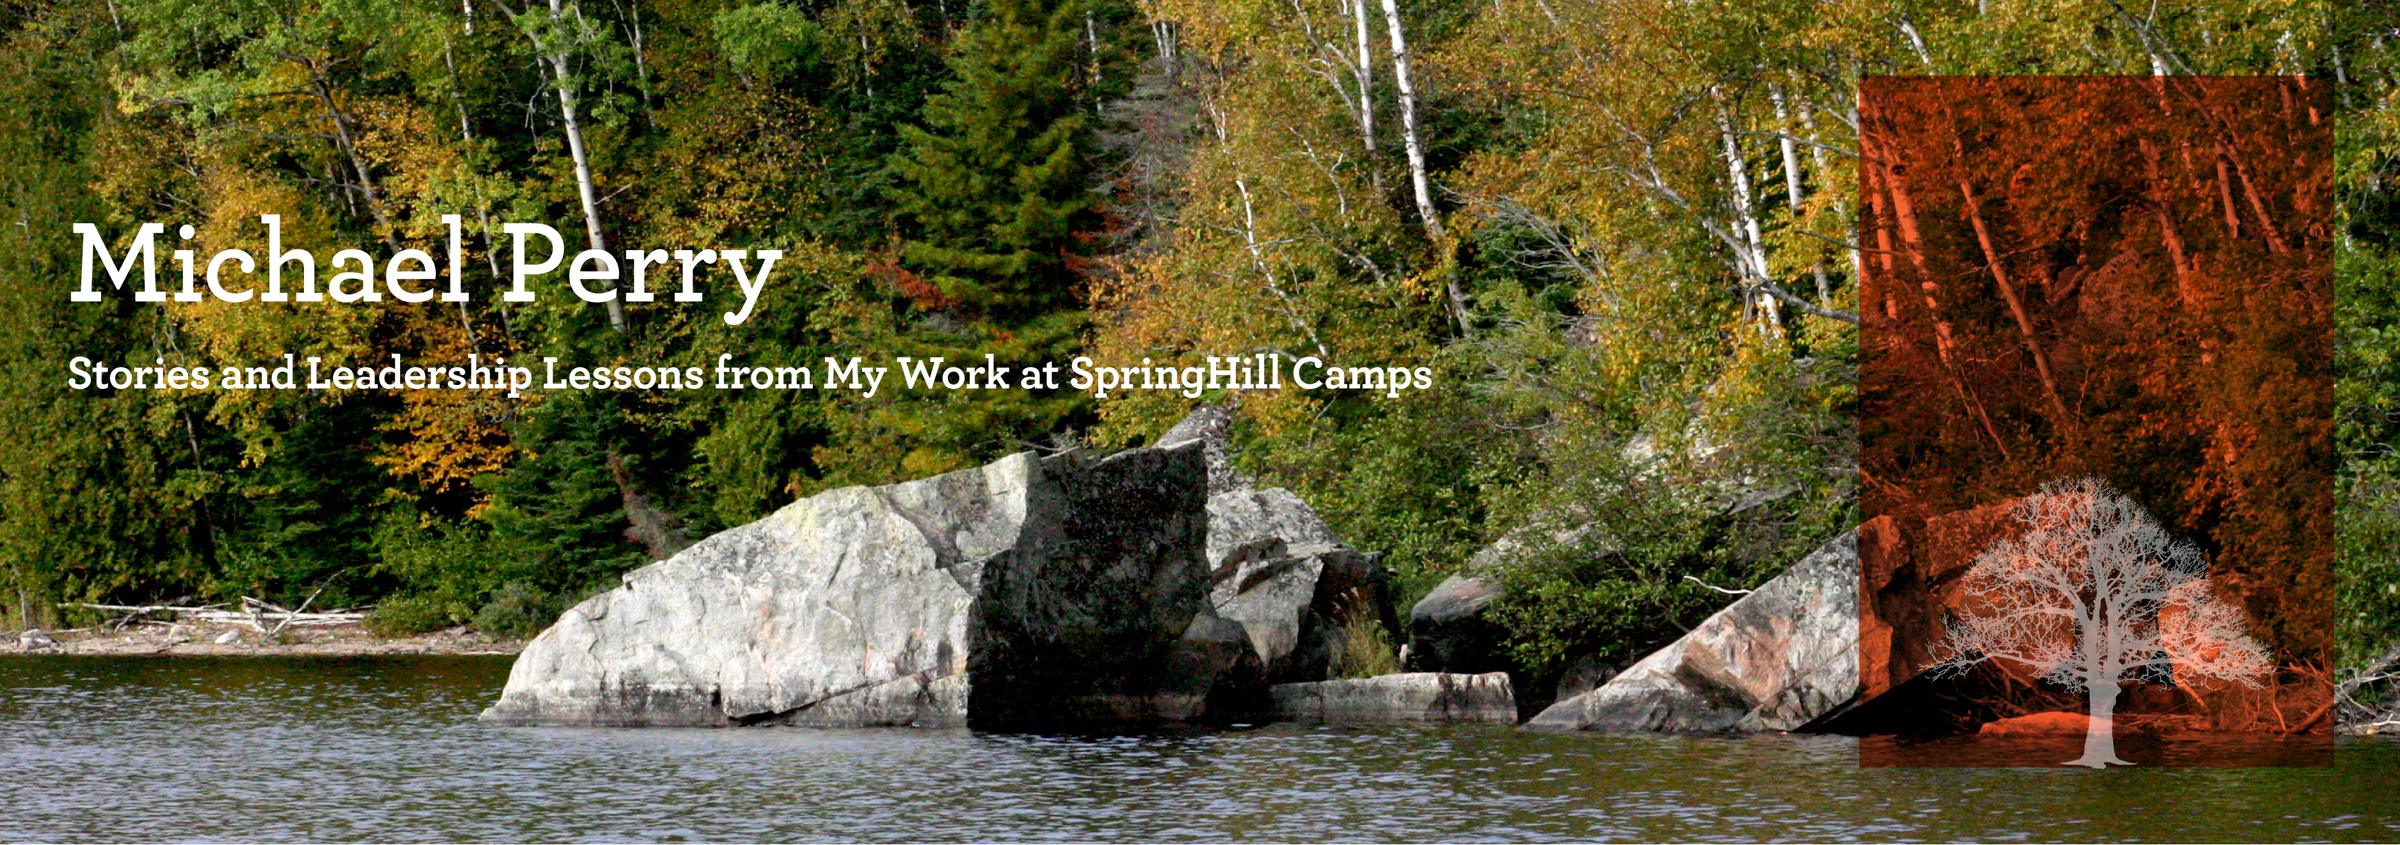 Michael Perry - Stories and Leadership Lessons from my Work at SpringHill Camps